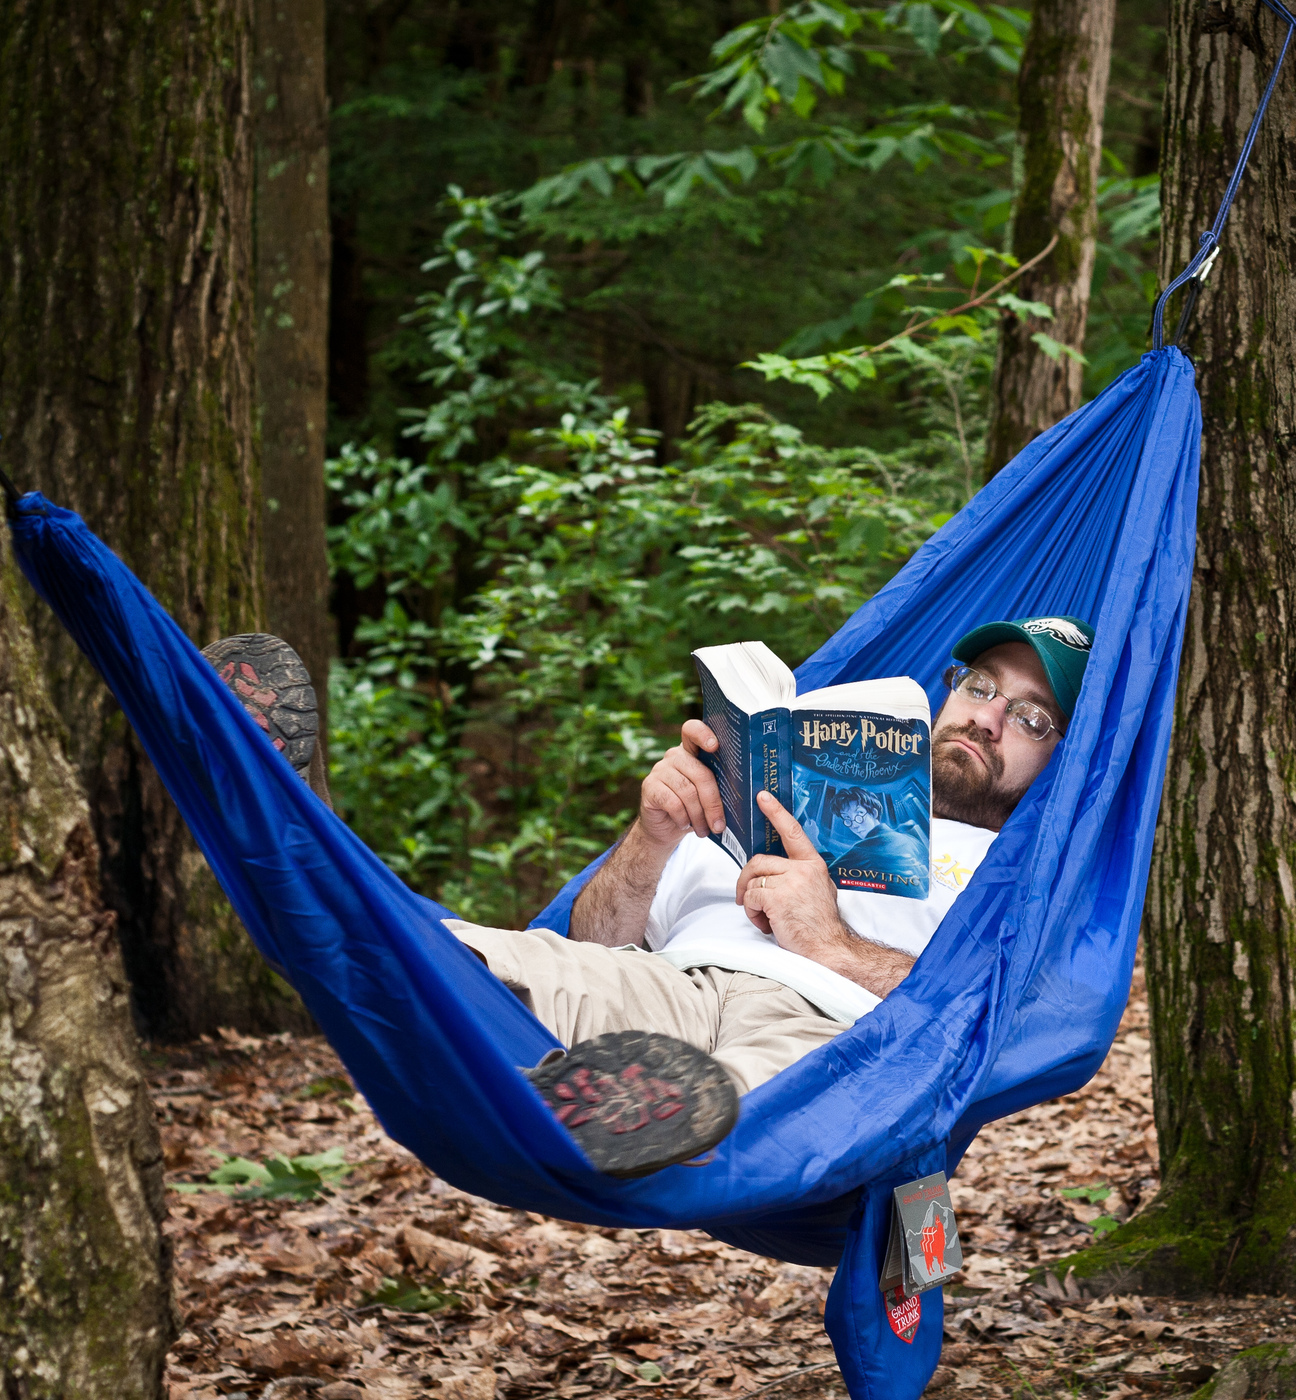 hammocks are mainly made to enable one take a nap in tropical areas during a trip or a tour  presently they are now available globally  best camping hammock under 100   authorized boots  rh   authorizedboots